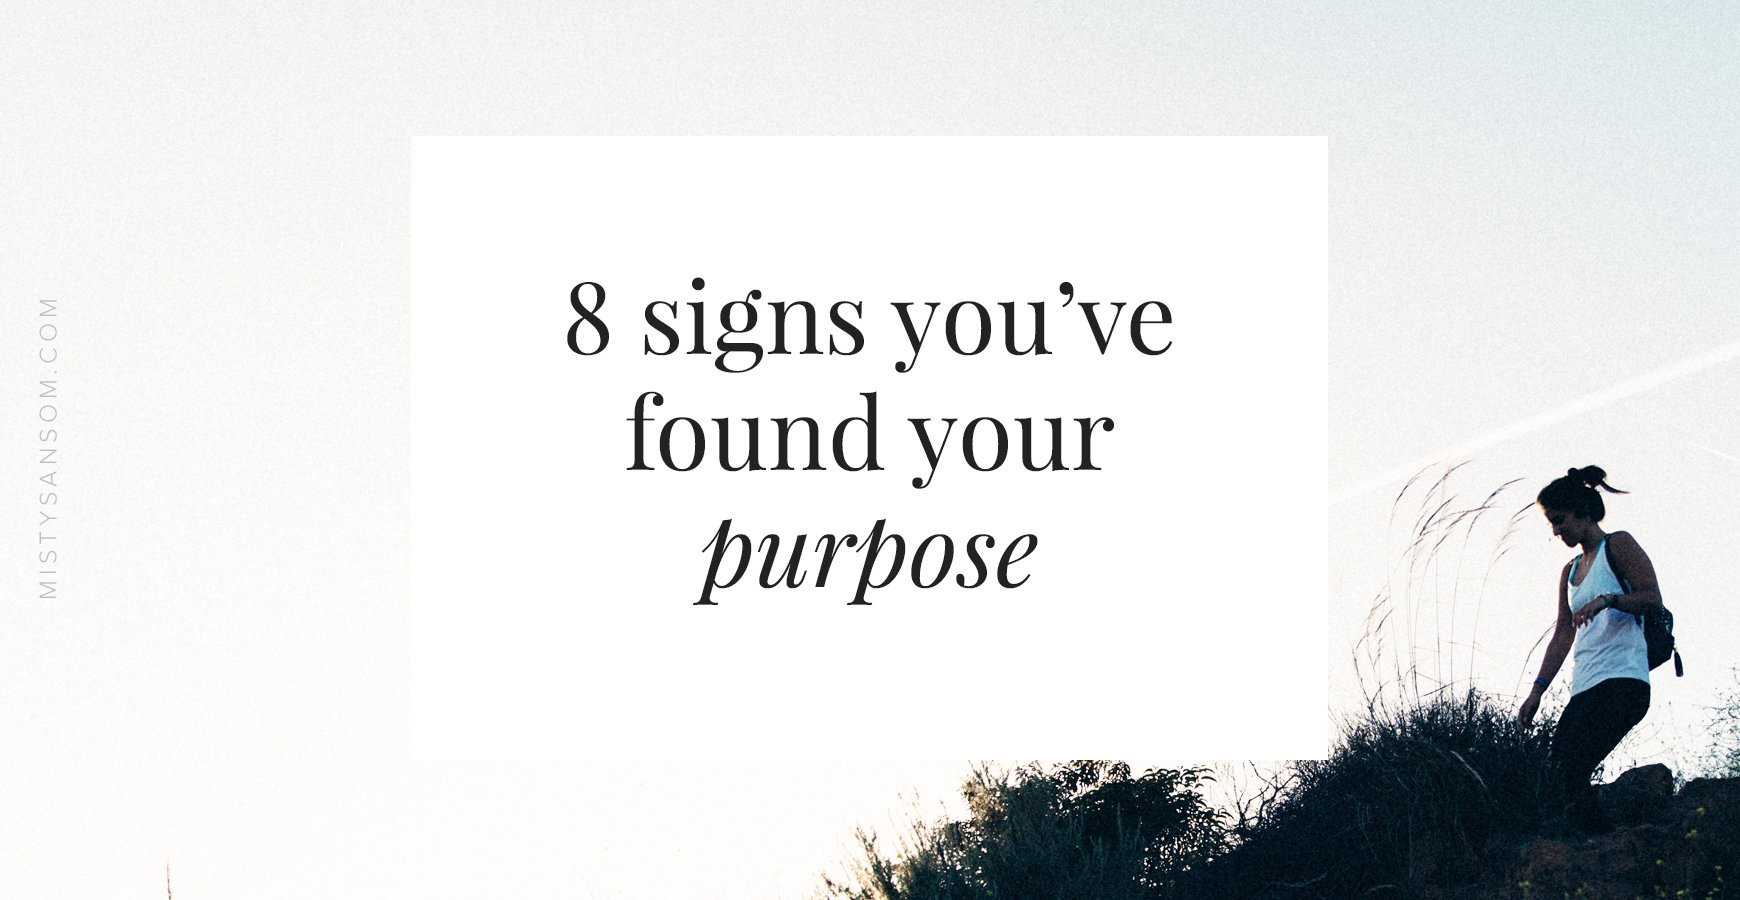 8-Signs-You've-Found-Your-Purpose.png